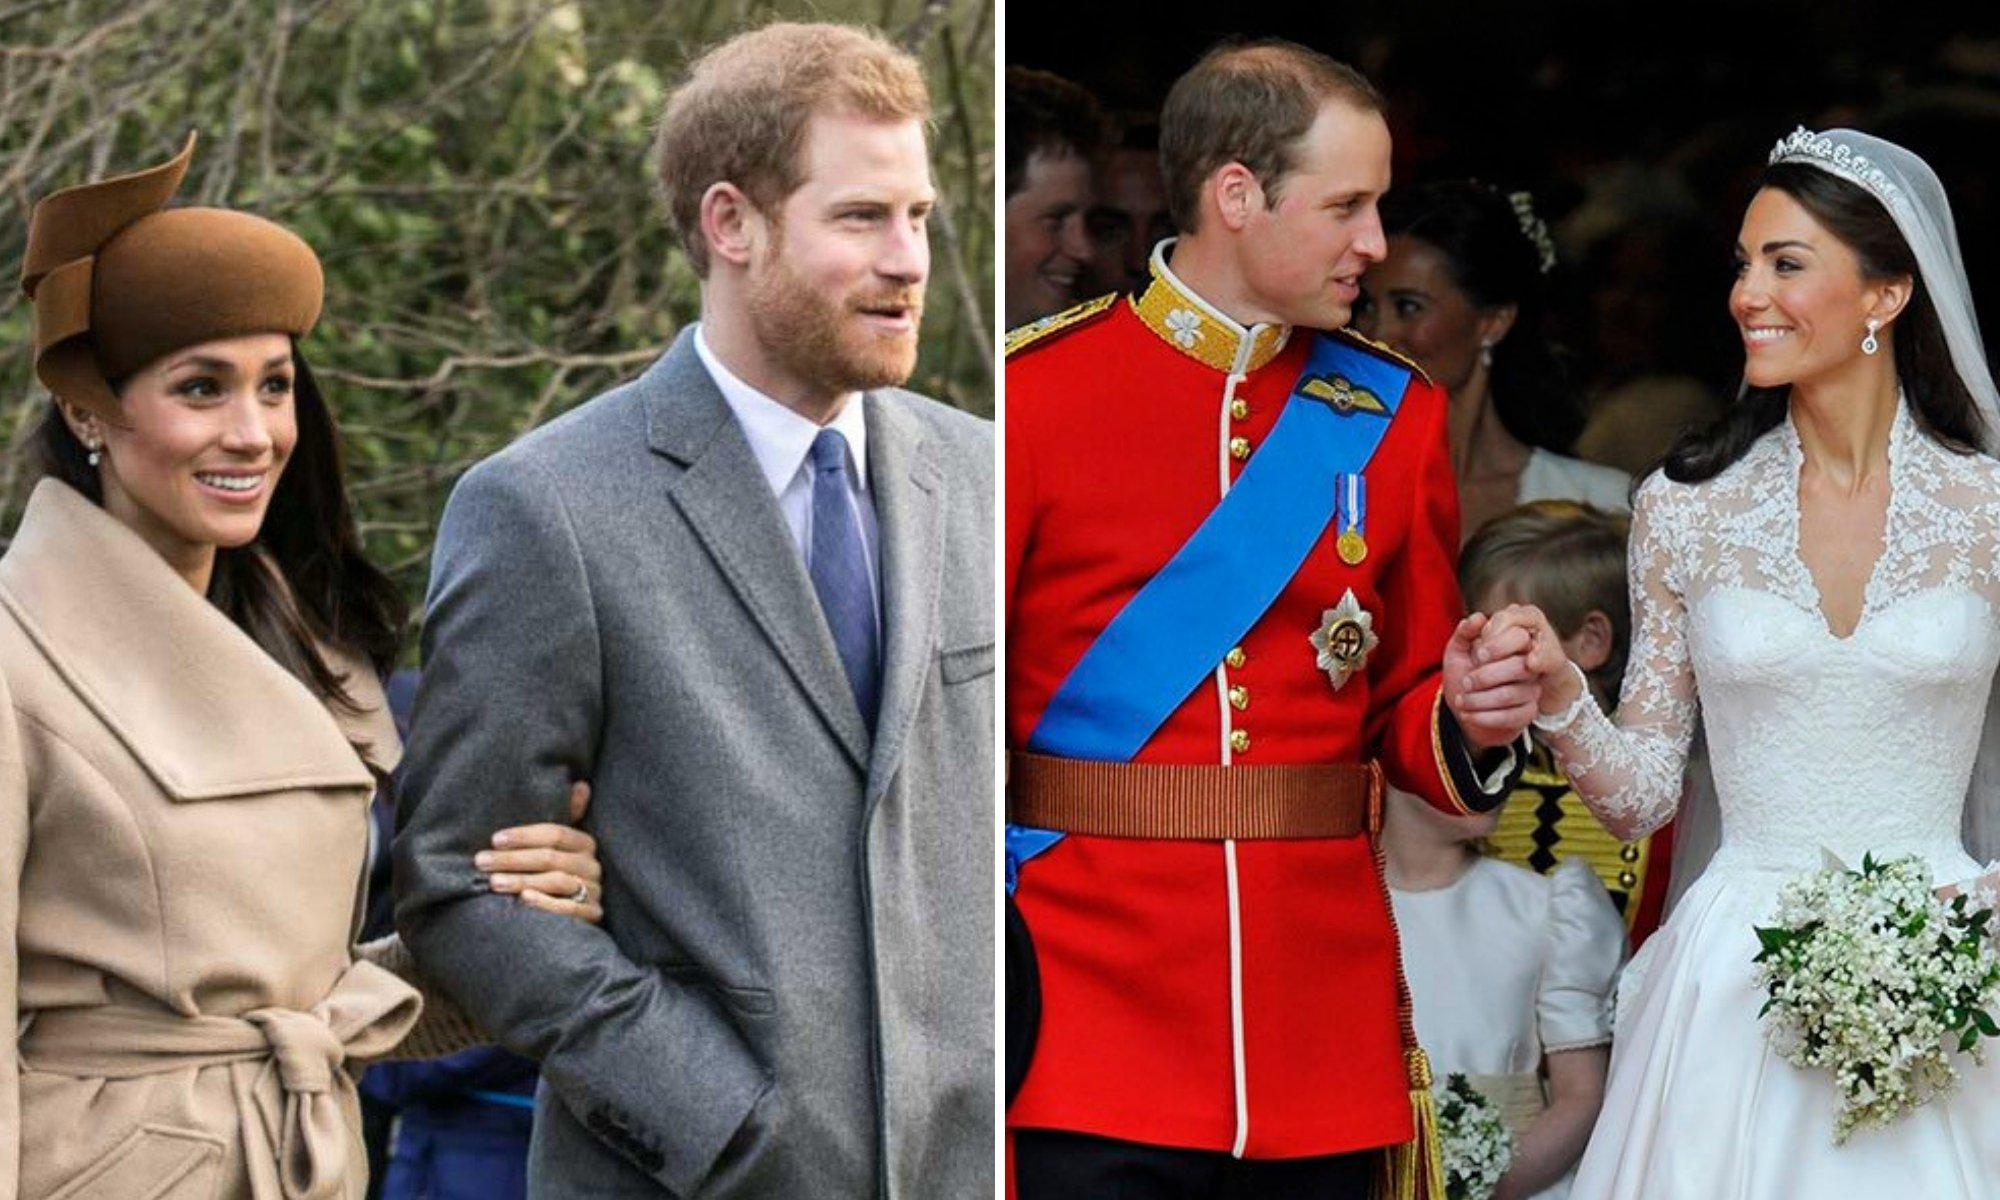 Prince William Meghan Markle Catherine Middleton Prince Harry